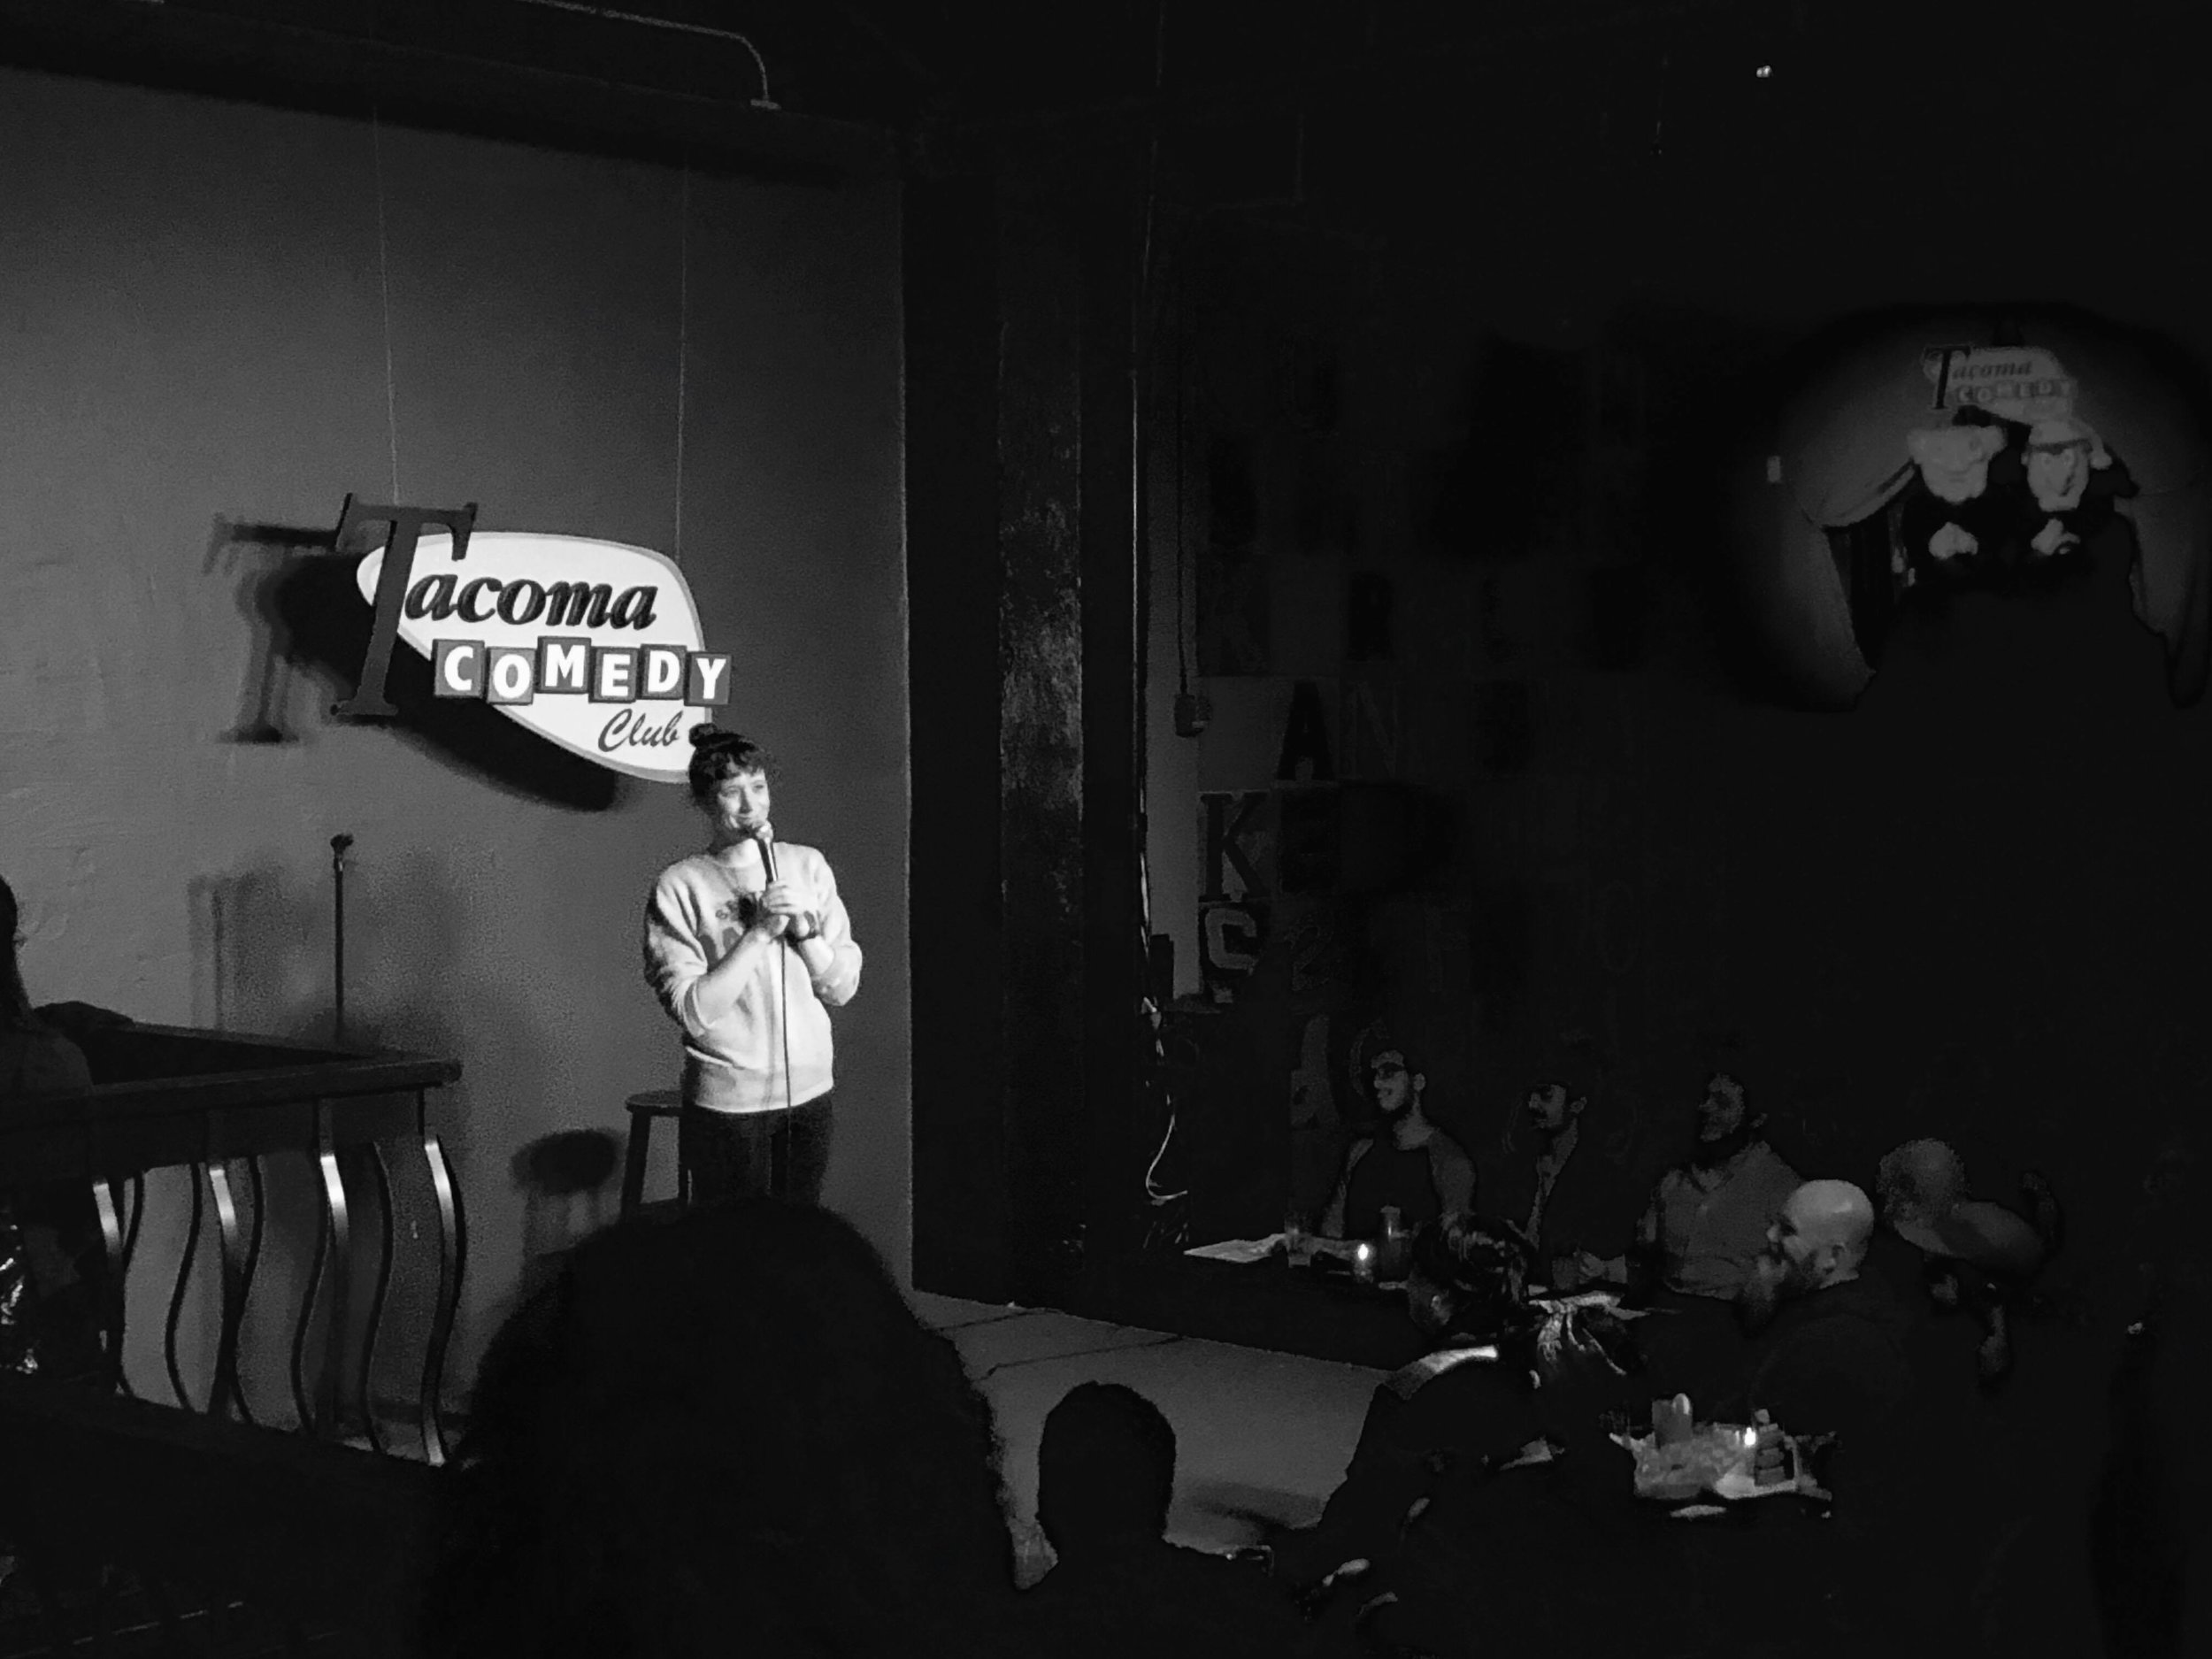 - June 18 | Vino Bella Wine Bar | Issaquah*June 21, 9pm | Comedy @ Shakabrah Java | Tacoma*June 25, 730pm | New Talent Tuesday @ Tacoma Comedy Club | Tacoma*June 26, 730pm | Open Mic @ Tacoma Comedy Club | TacomaJune 26, 830pm | Seattle's Best @ Comedy Underground | SeattleJuly 20, 9pm | NW Peaks Comedy Night @ NW Peaks Brewery (Hillman City) | SeattleStay tuned for more dates. Thank you for supporting live comedy. See you soon!* indicates open mic or free showcase